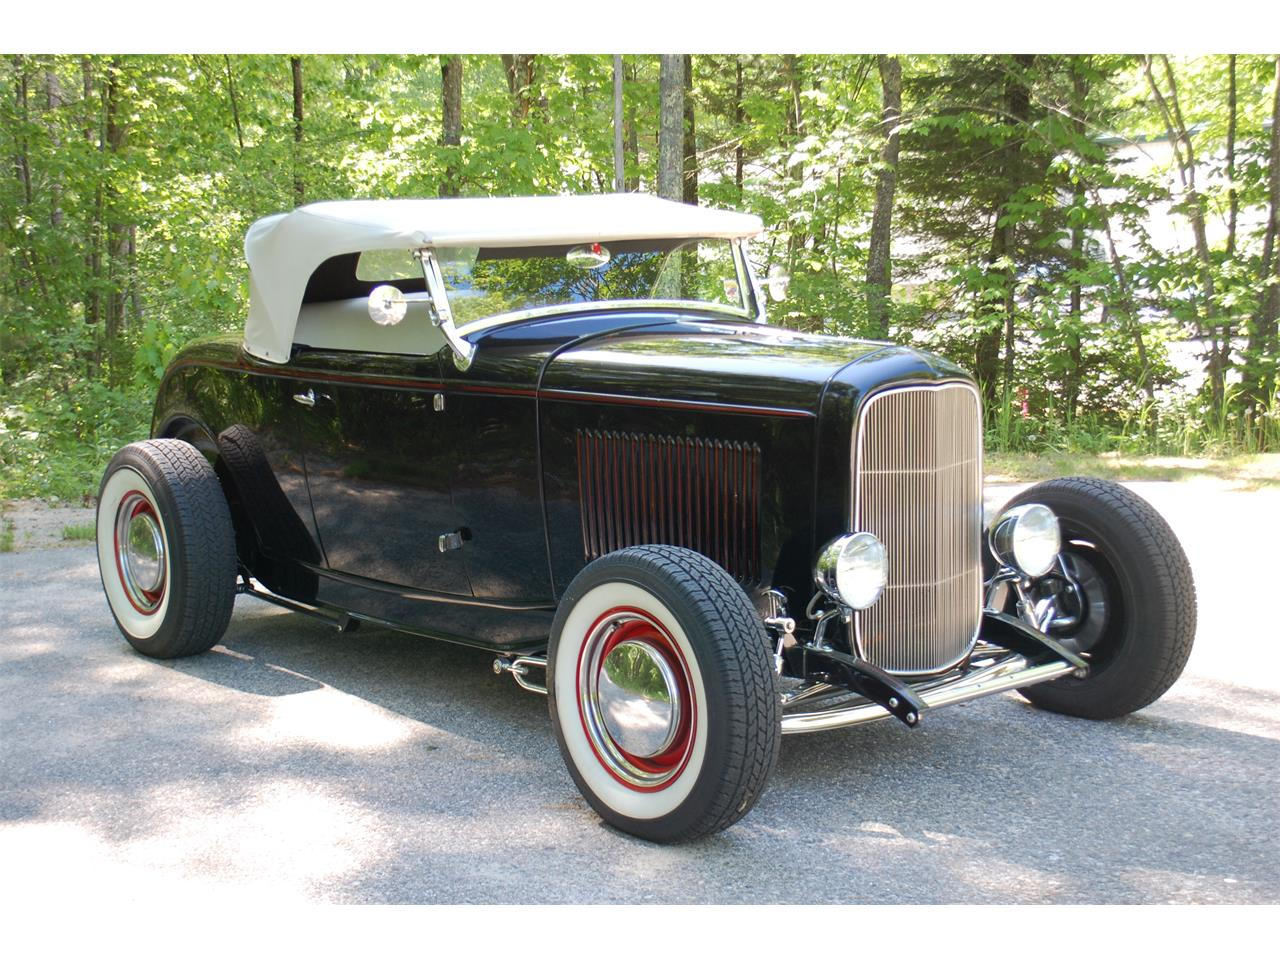 Large picture of classic 32 roadster nivc